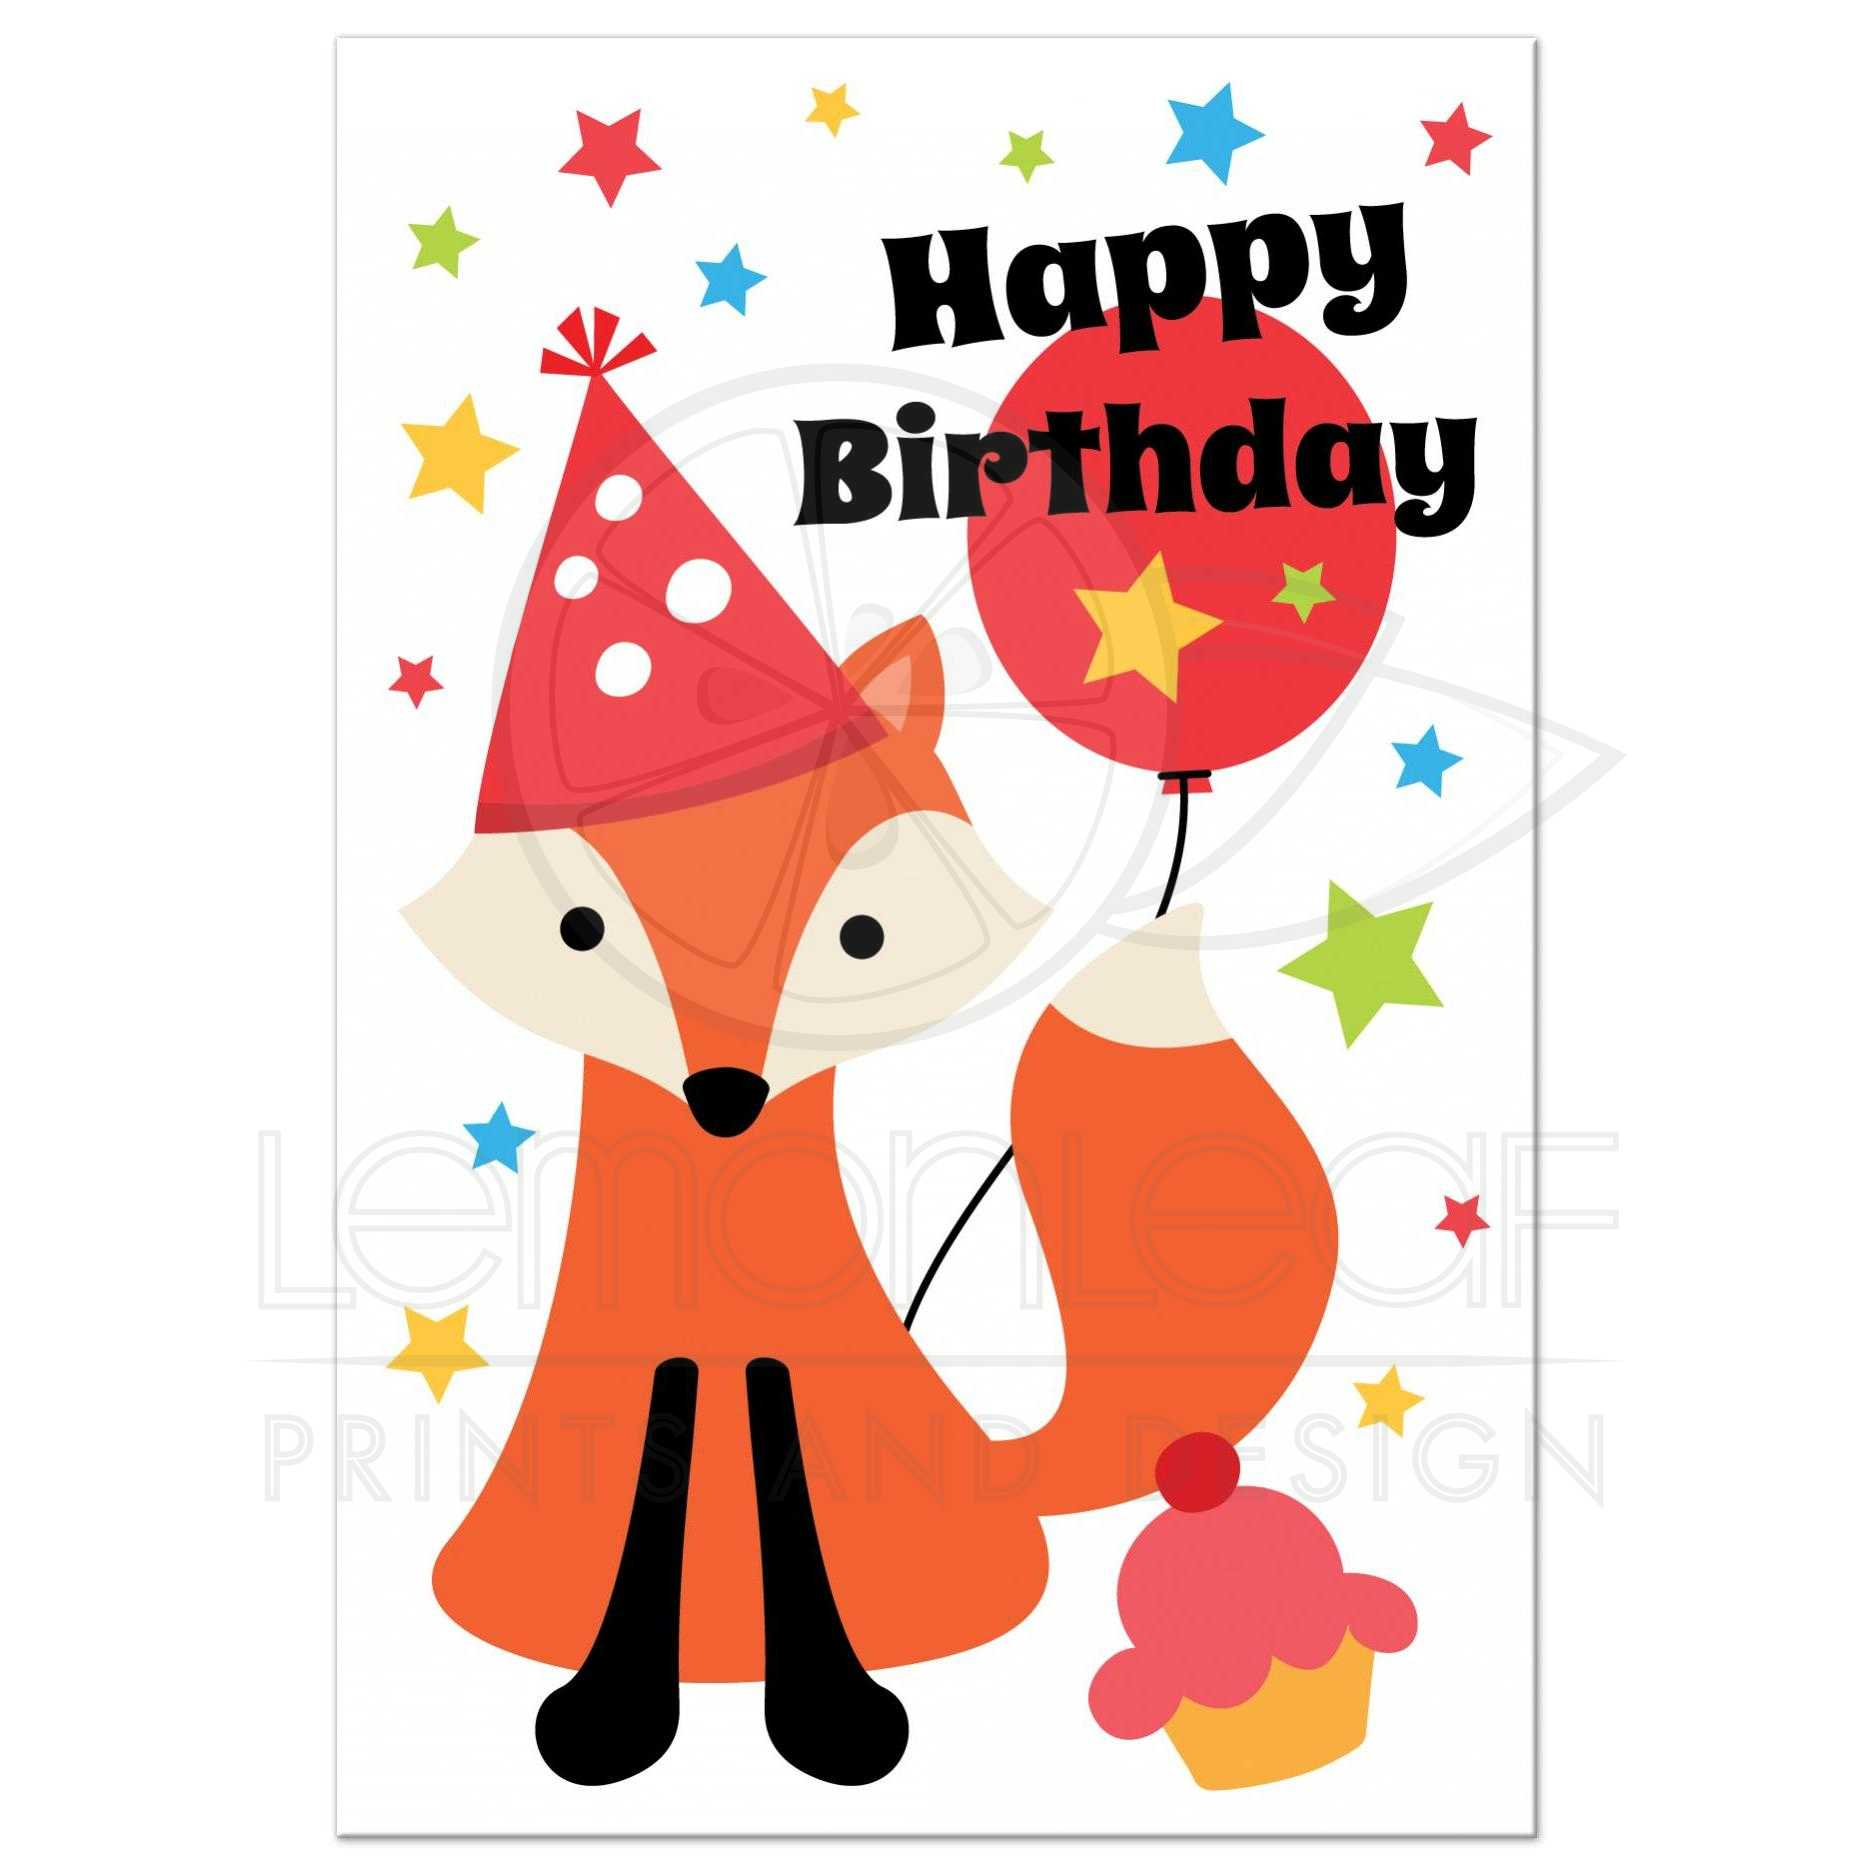 Cute fox with party hat cupcake and stars happy birthday postcard cute happy birthday postcard with cute cartoon fox balloon and colorful stars bookmarktalkfo Image collections